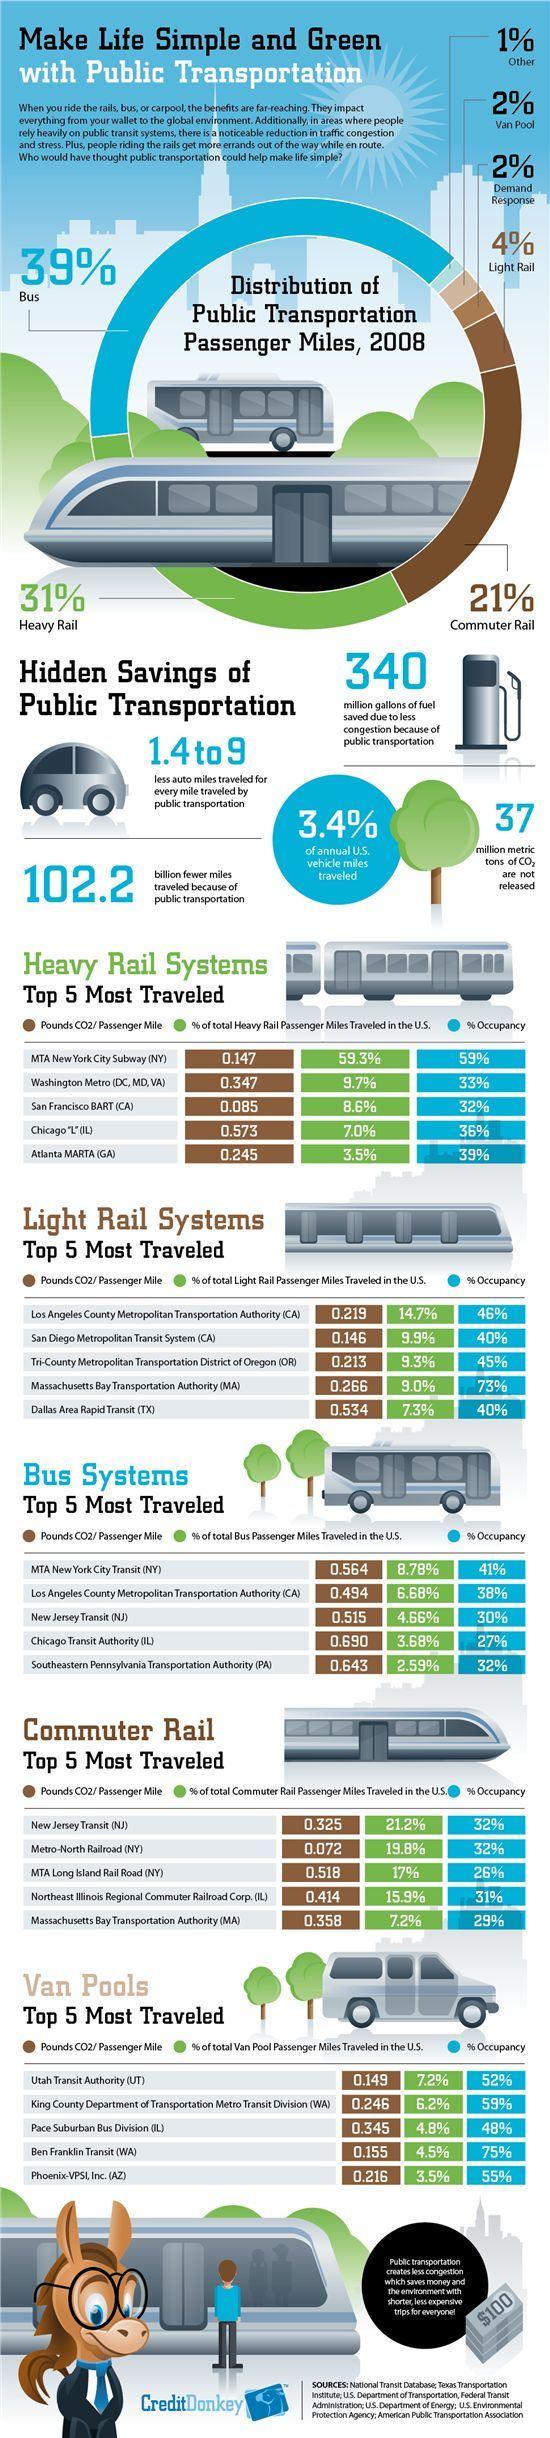 Use Public Transportation to Save the Environment